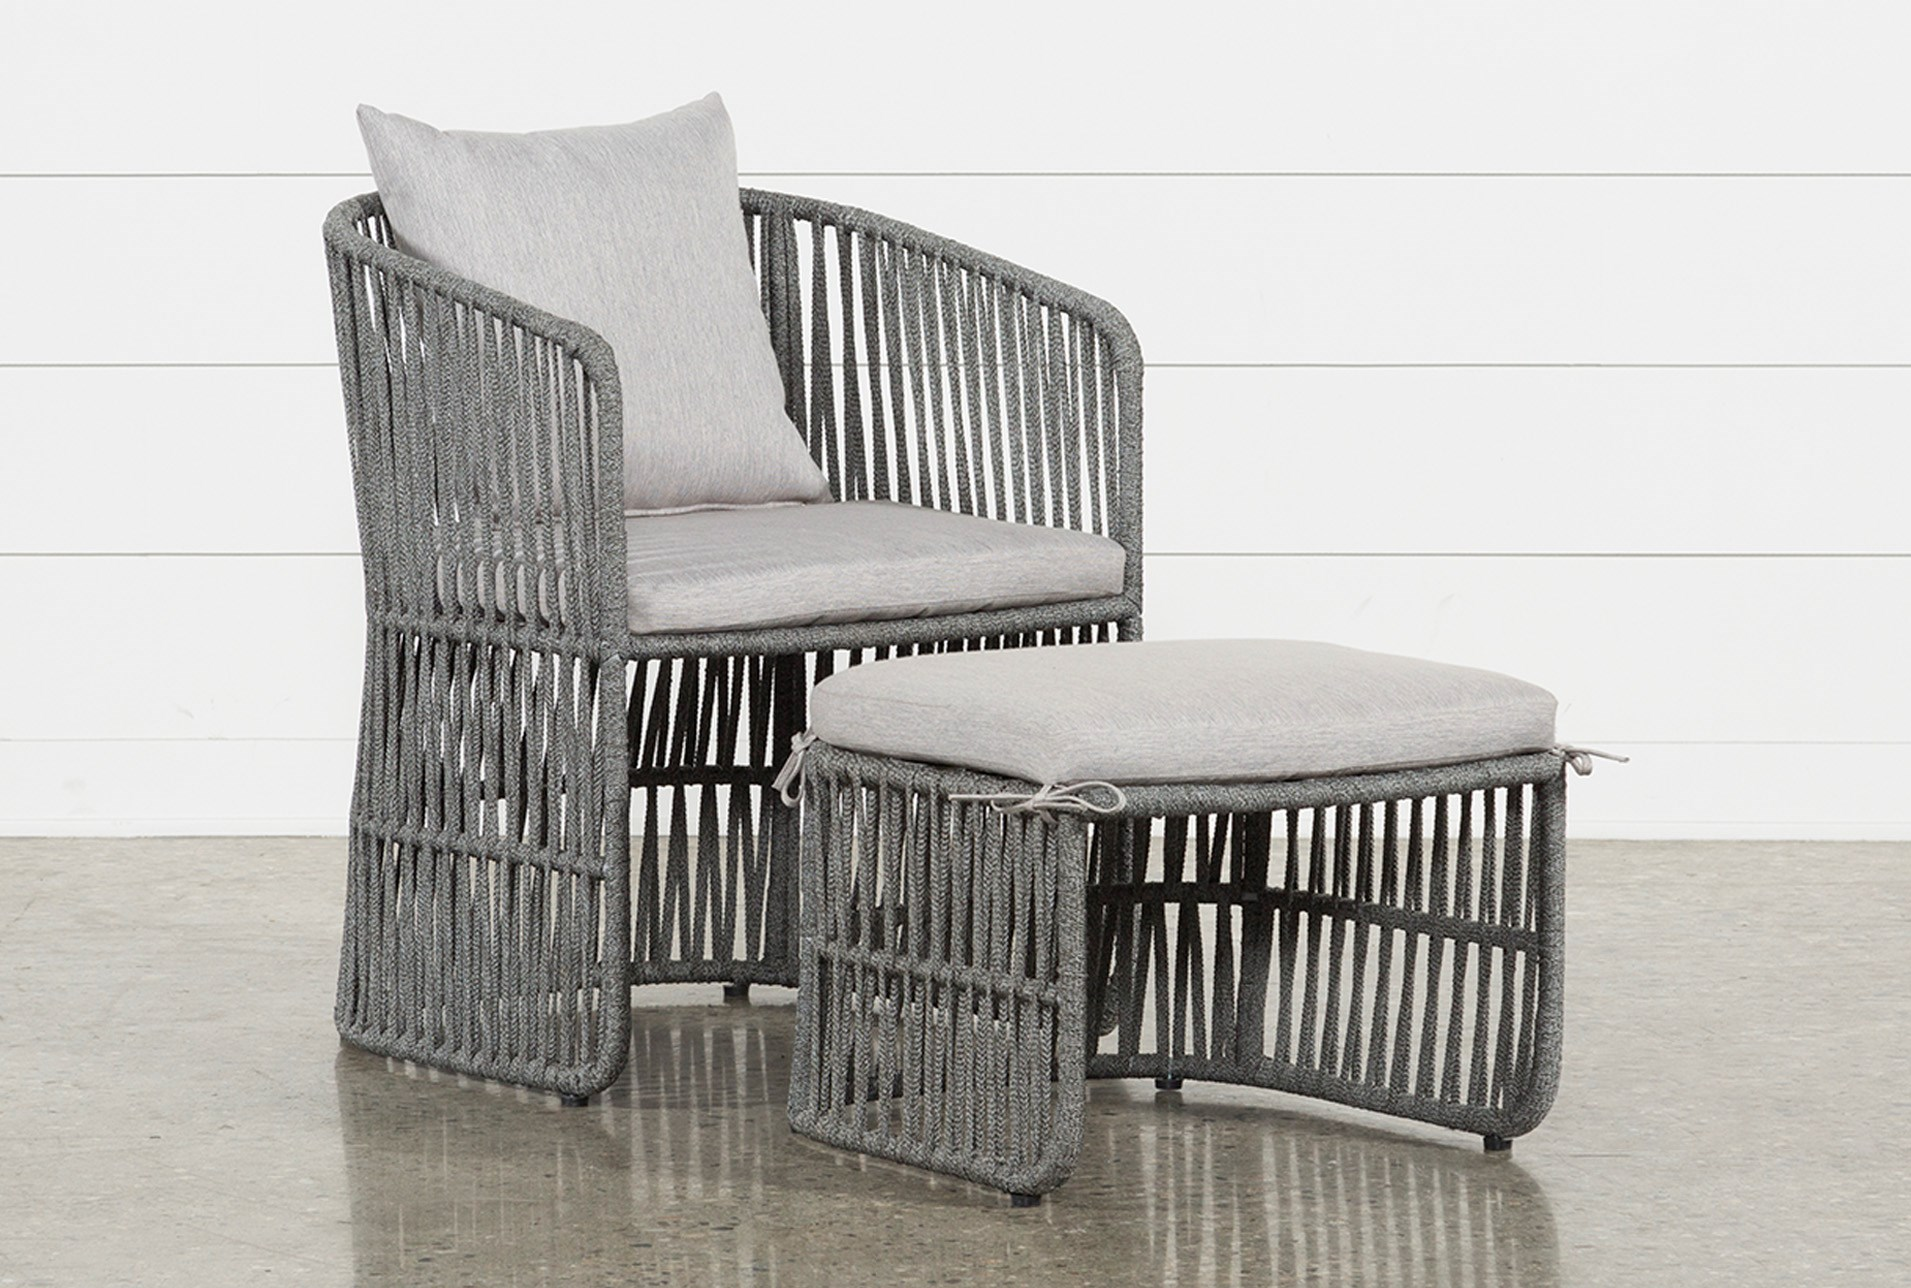 Outdoor nautical grey rope lounge chair and ottoman qty 1 has been successfully added to your cart